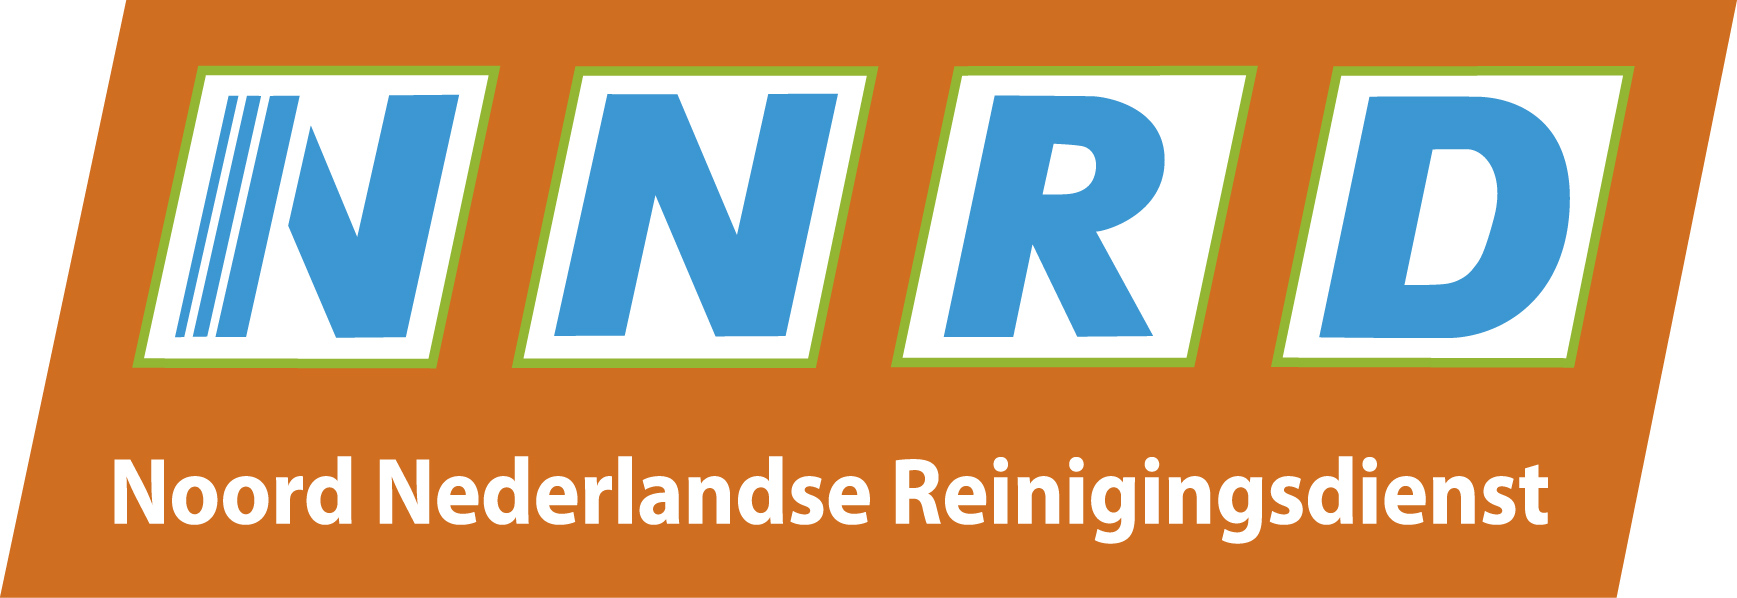 nnrd-reiniging-been-management-consulting